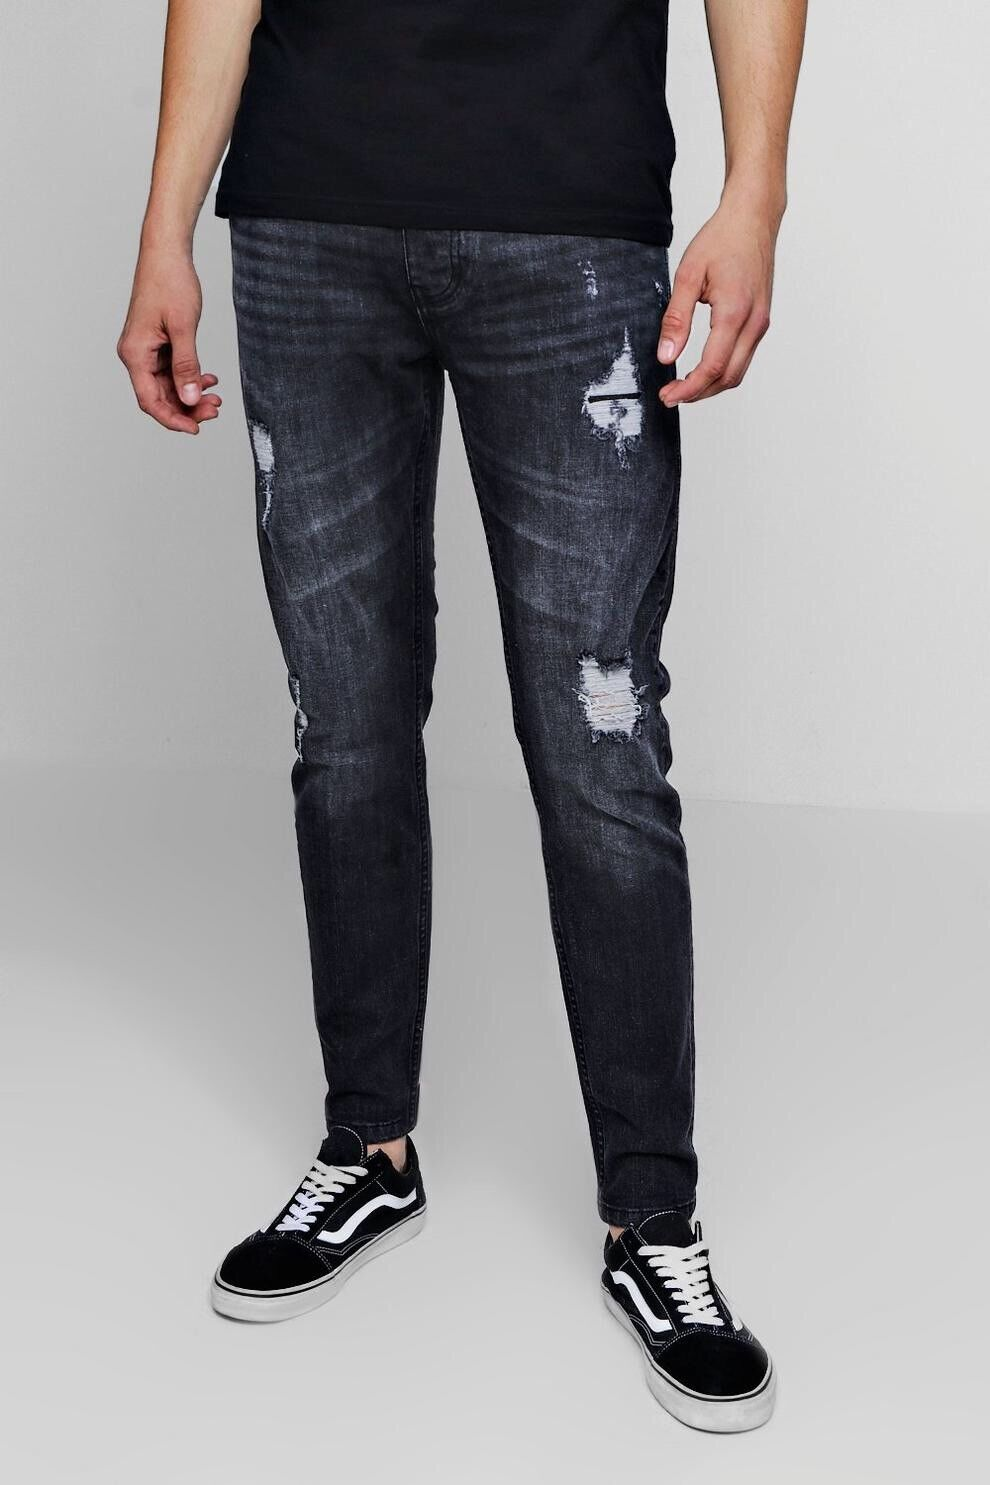 Threadbare - Skinny Ripped Distressed Jeans (Size 34R)